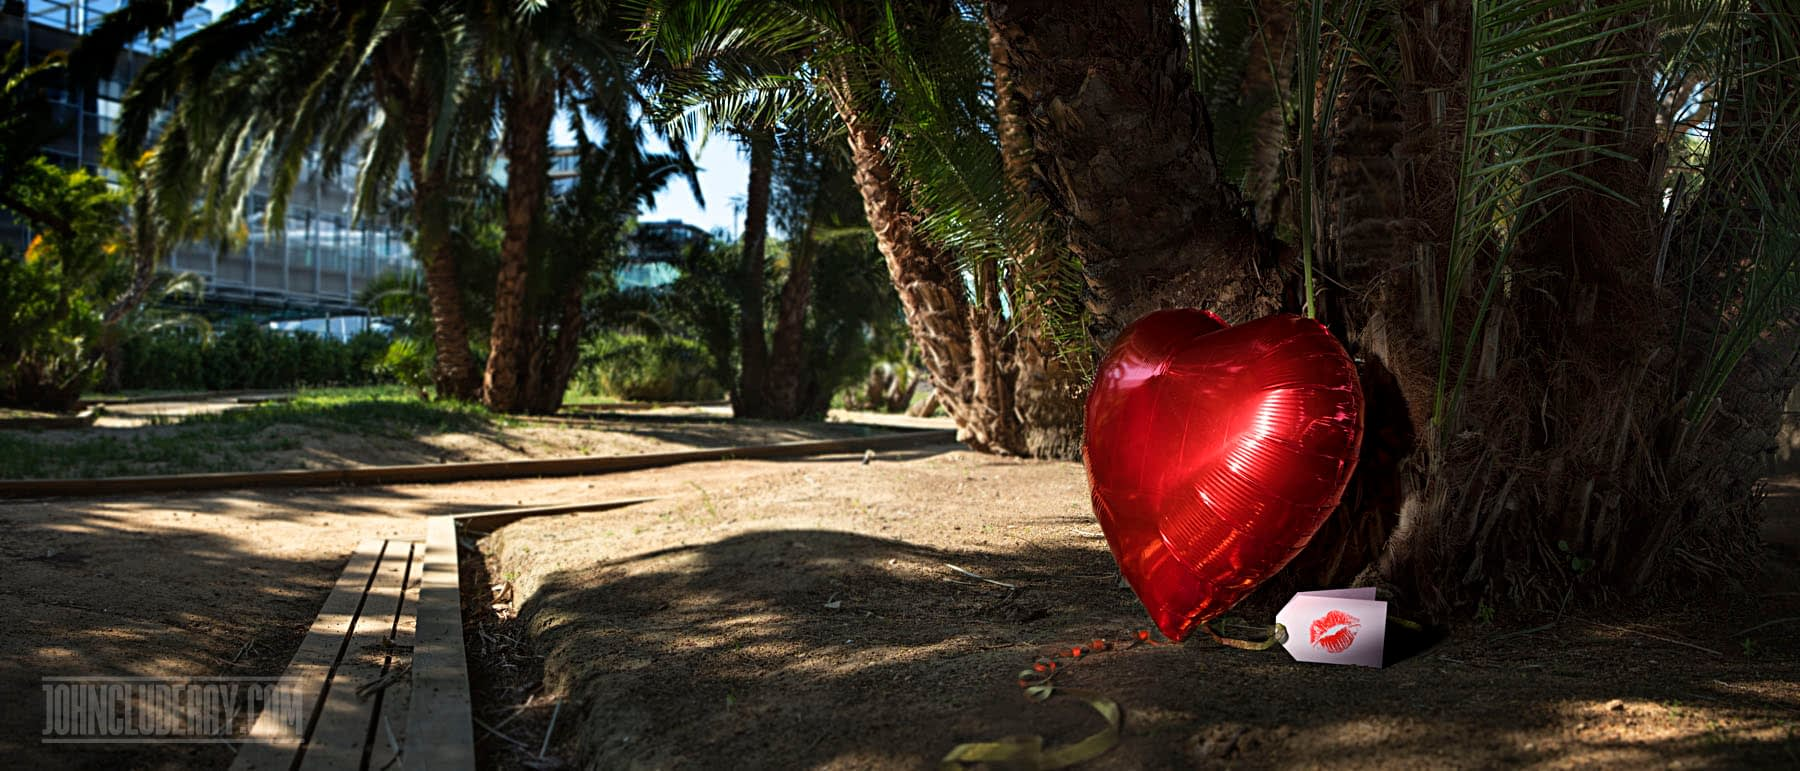 Heart Balloon Series at JohnCluderay.com